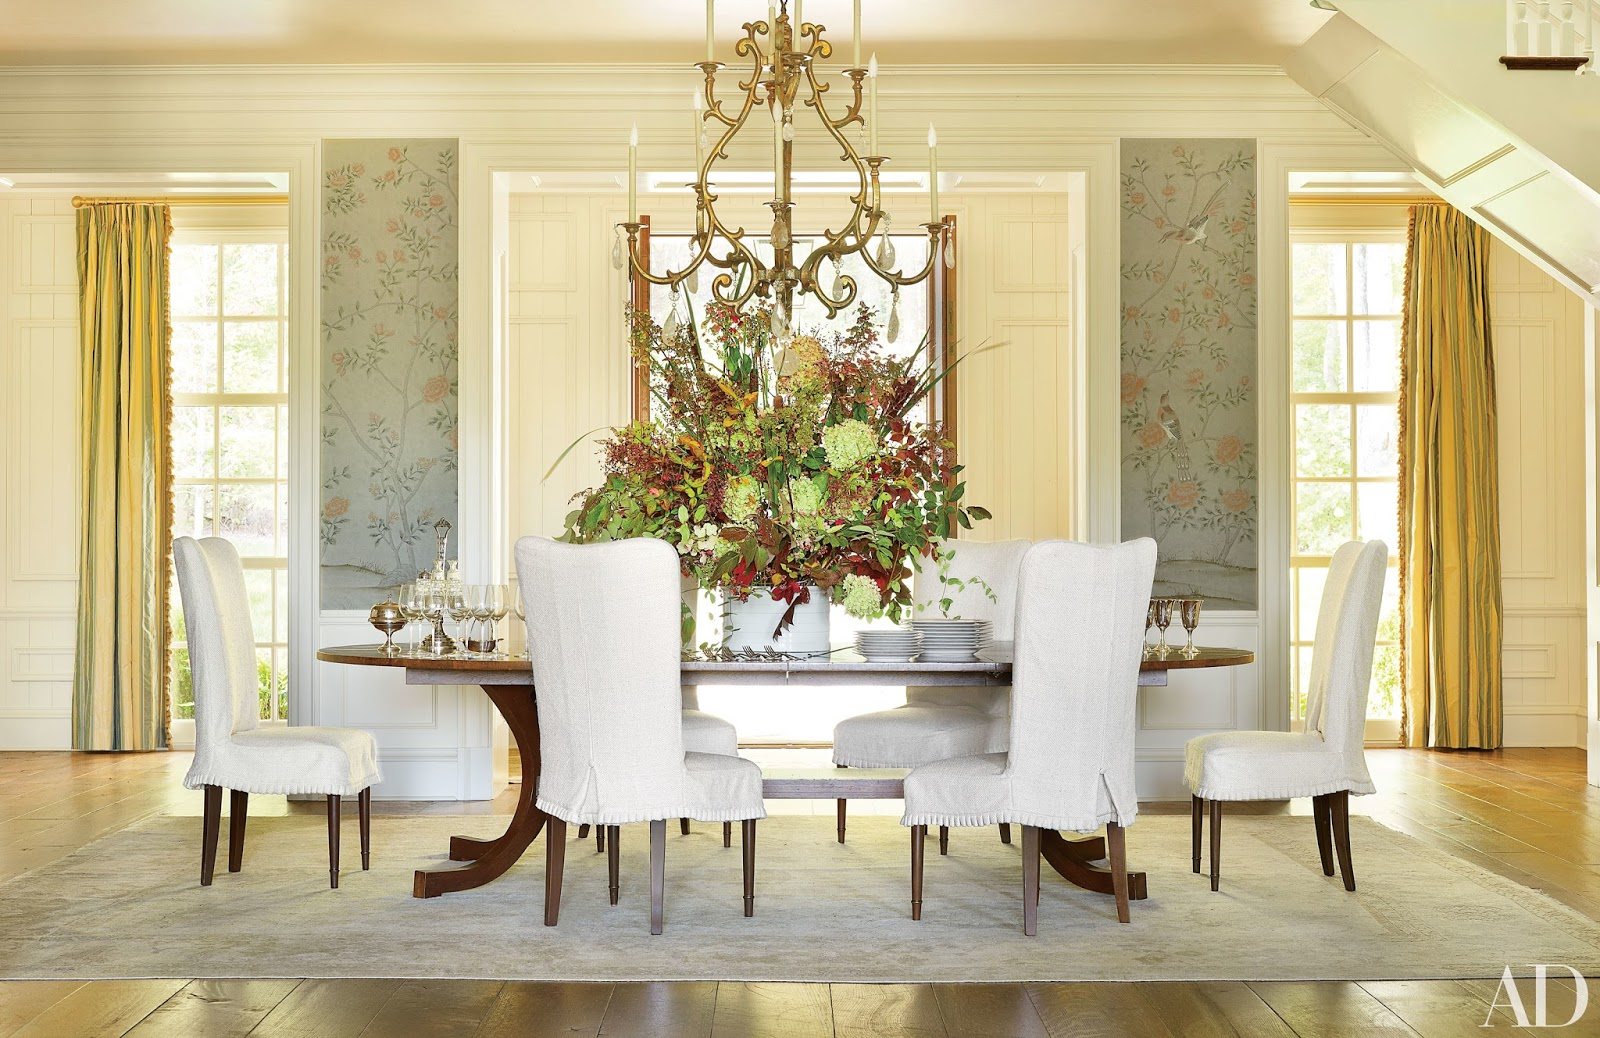 Amazing Dining Room Decor by AD100 Designers dining room decor by ad100 designers Amazing Dining Room Decor by AD100 Designers Amazing Dining Room Decor by AD100 Designers9